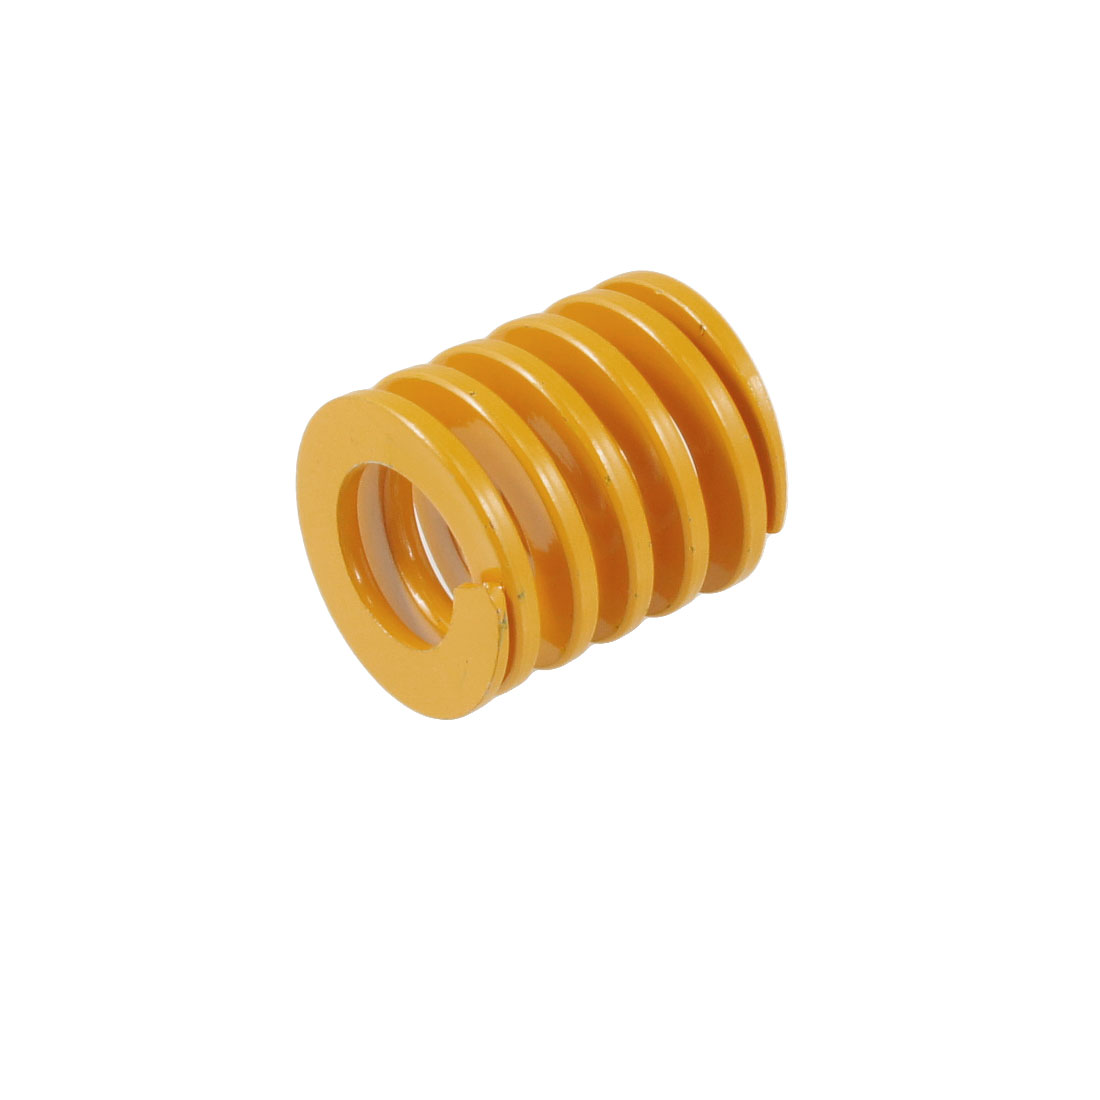 30mm x 17mm x 30mm Spiral Metal Stamping Compression Die Spring